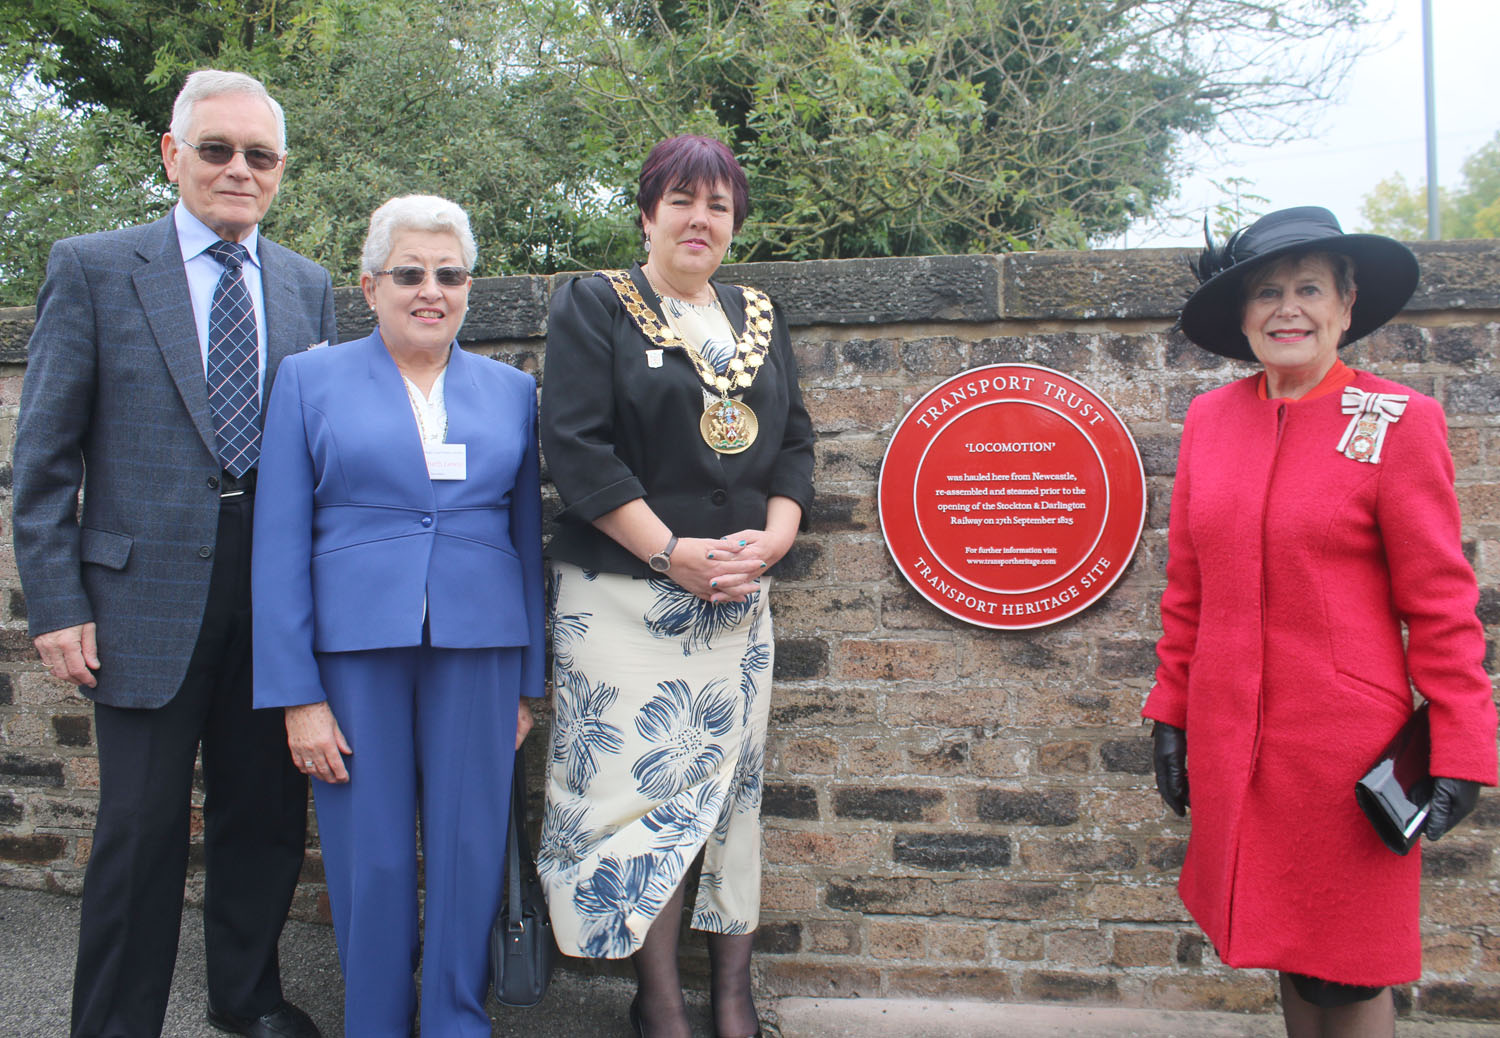 Aycliffe's Claim to Part of Railway Birth History